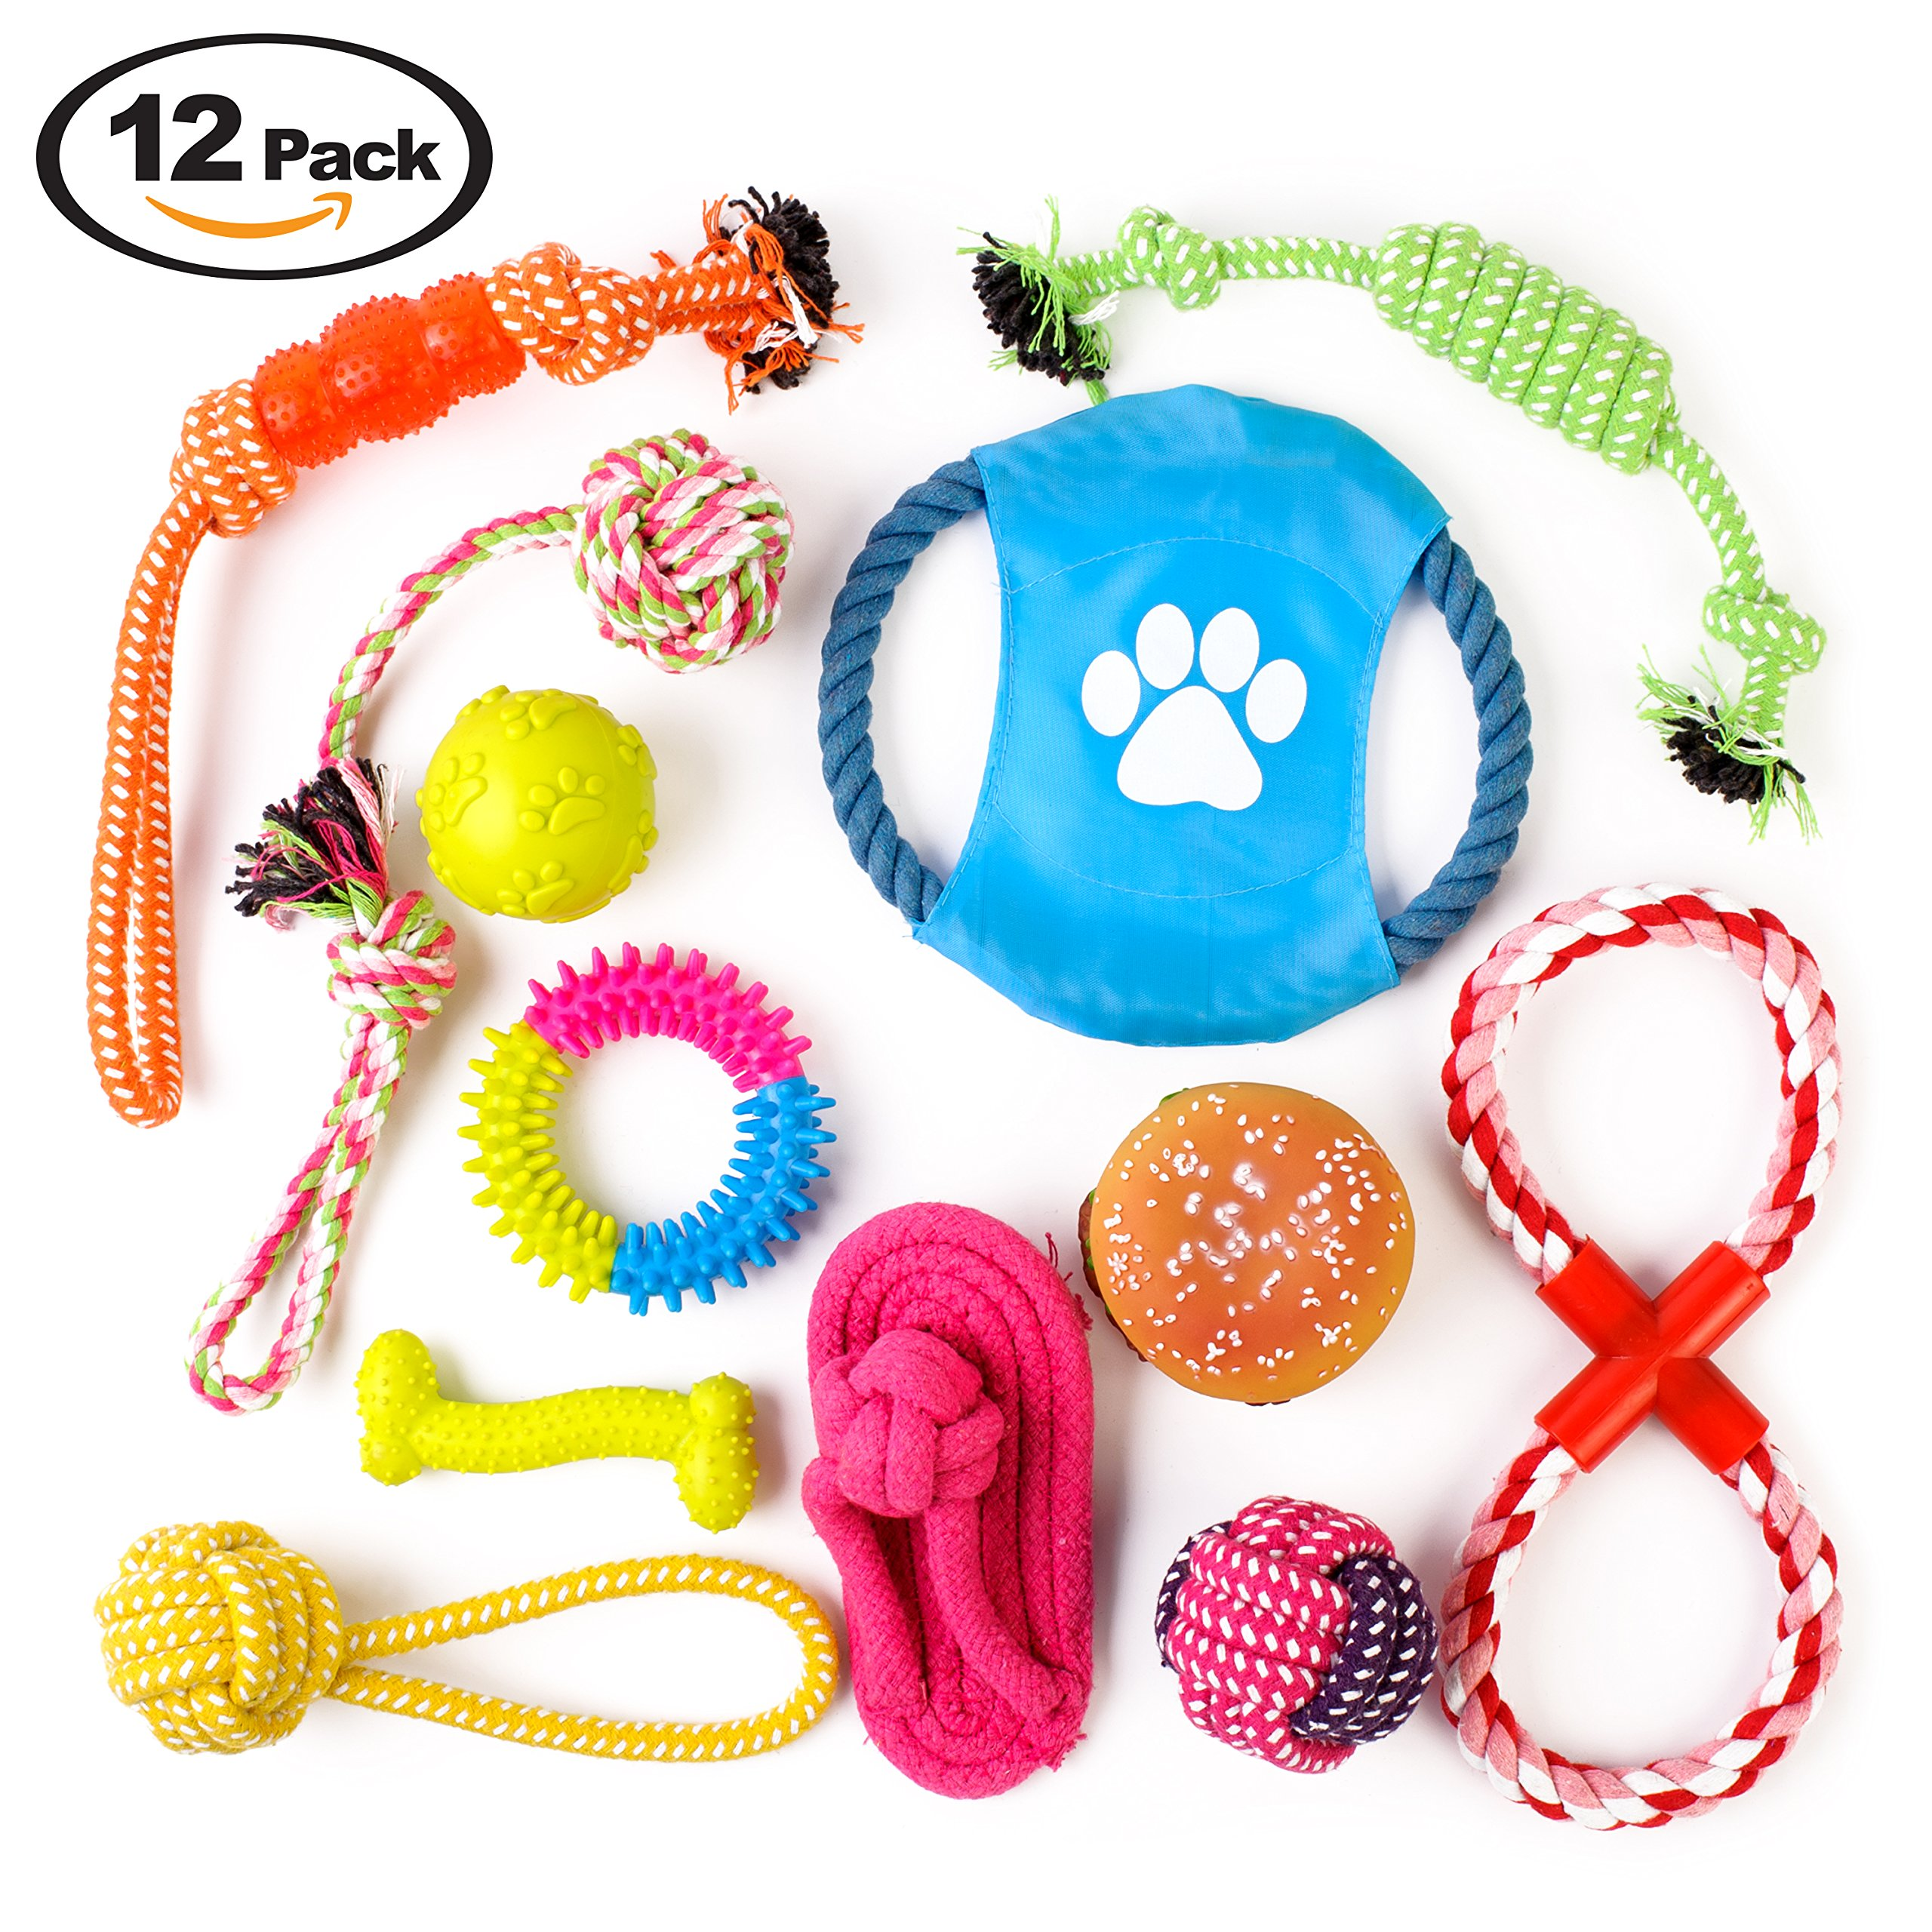 Complete 12 Pack of Dog Toys. Big Set Includes Chew, Rope, Duck, Ball, Throw, Squeak for Small, Medium Dogs, Relieves Boredom for Better Teeth, Training. No Messy Stuffing